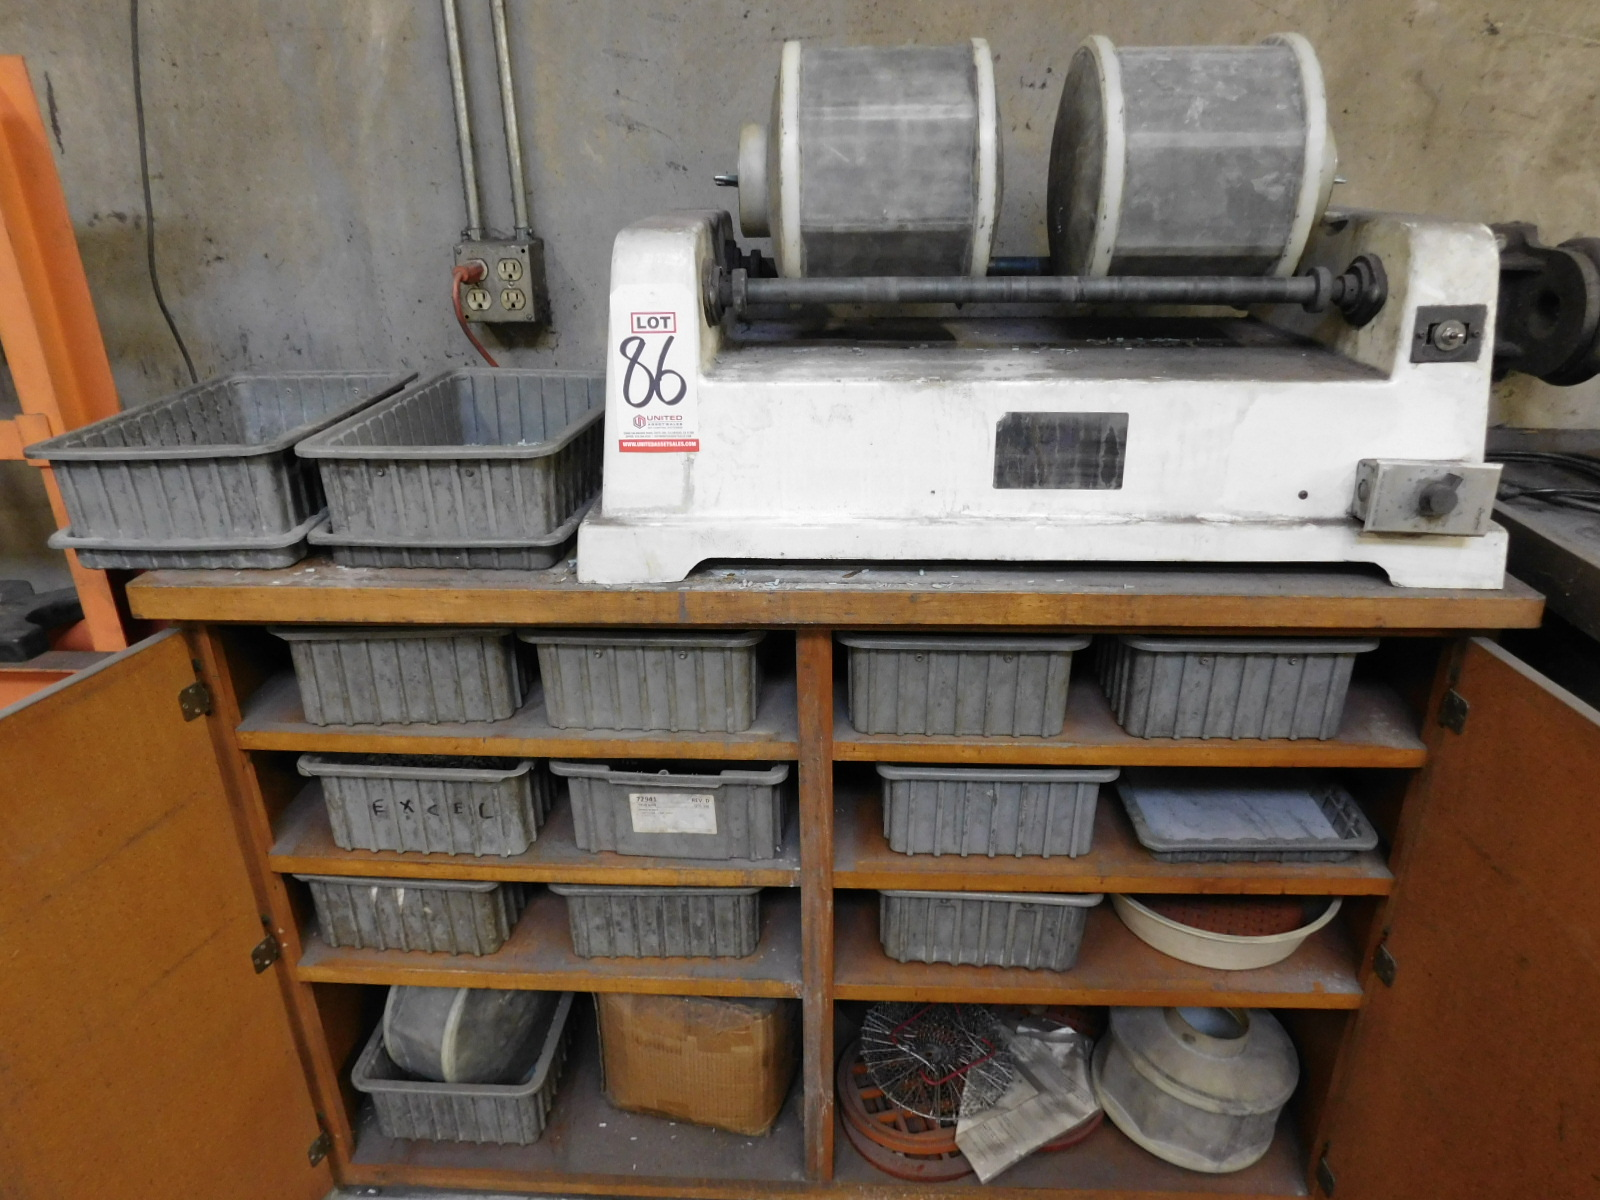 LOT - DUAL DRUM ROTARY MEDIA TUMBLER W/ TIMER, COMES W/ EXTRA DRUMS AND ALL MEDIA IN CABINET